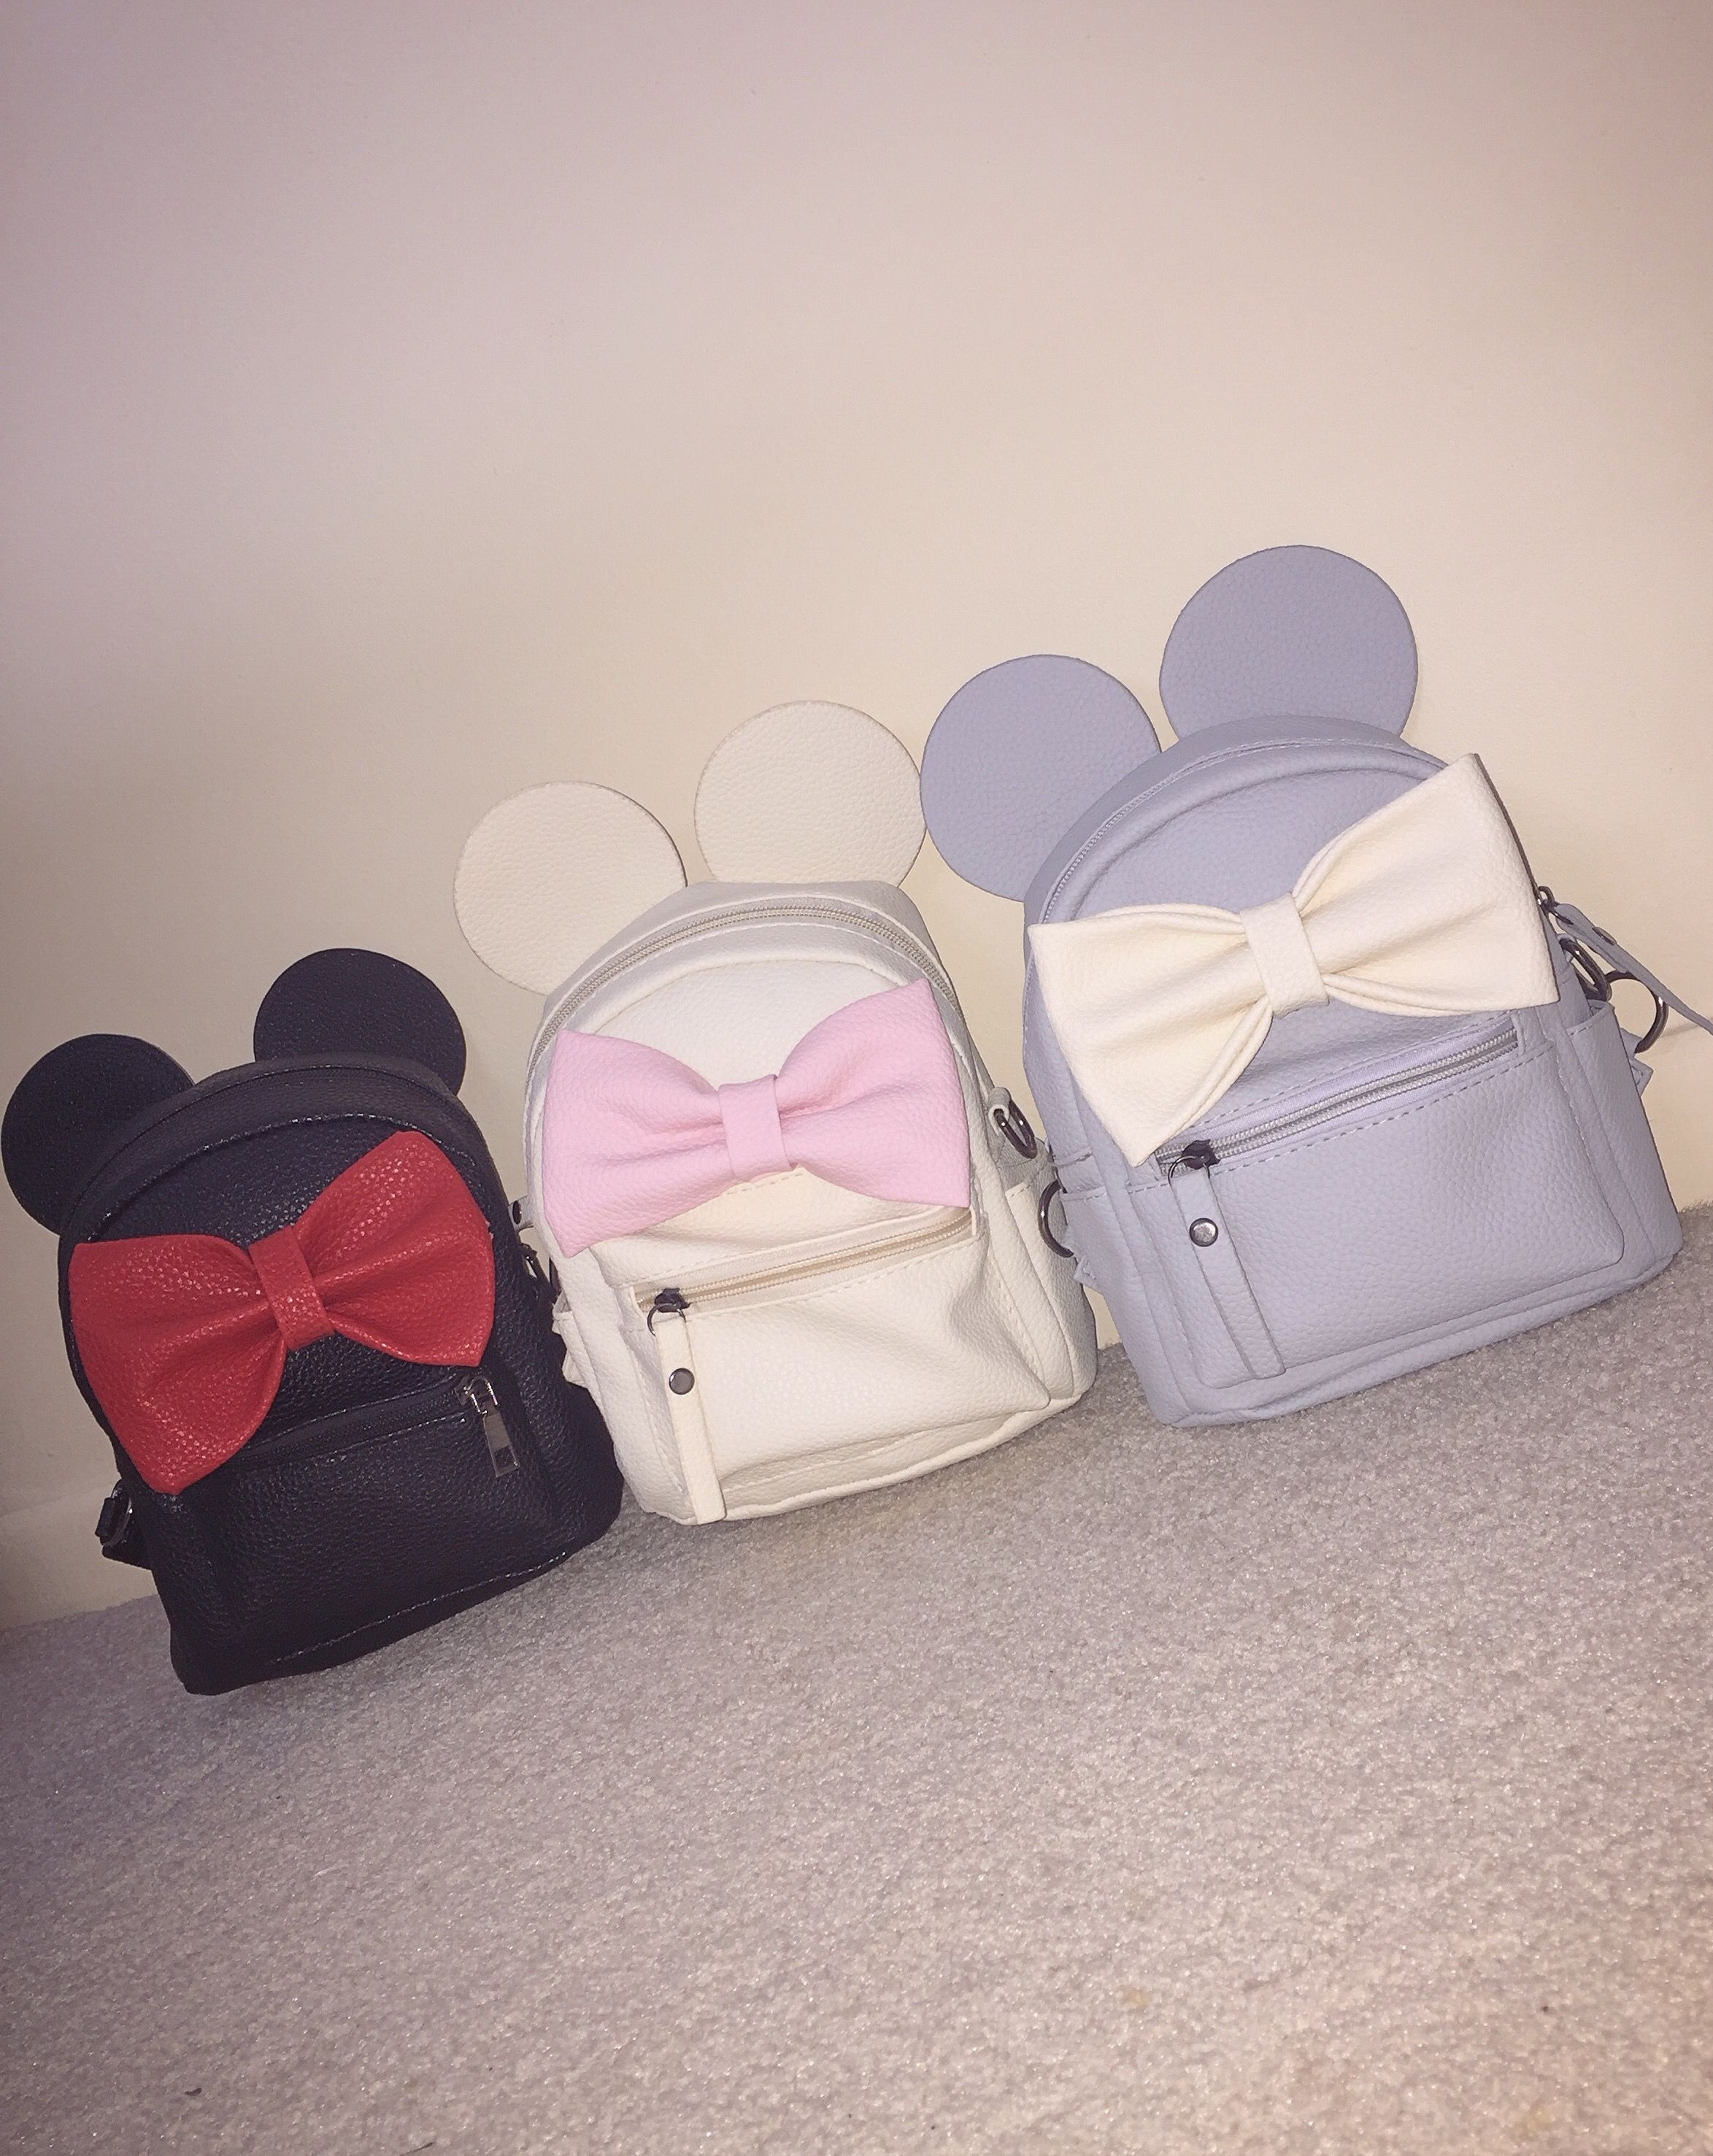 c1a26cece7ae Matching Minnie Mouse backpacks for myself and two of my best friends from  my Disney College Program